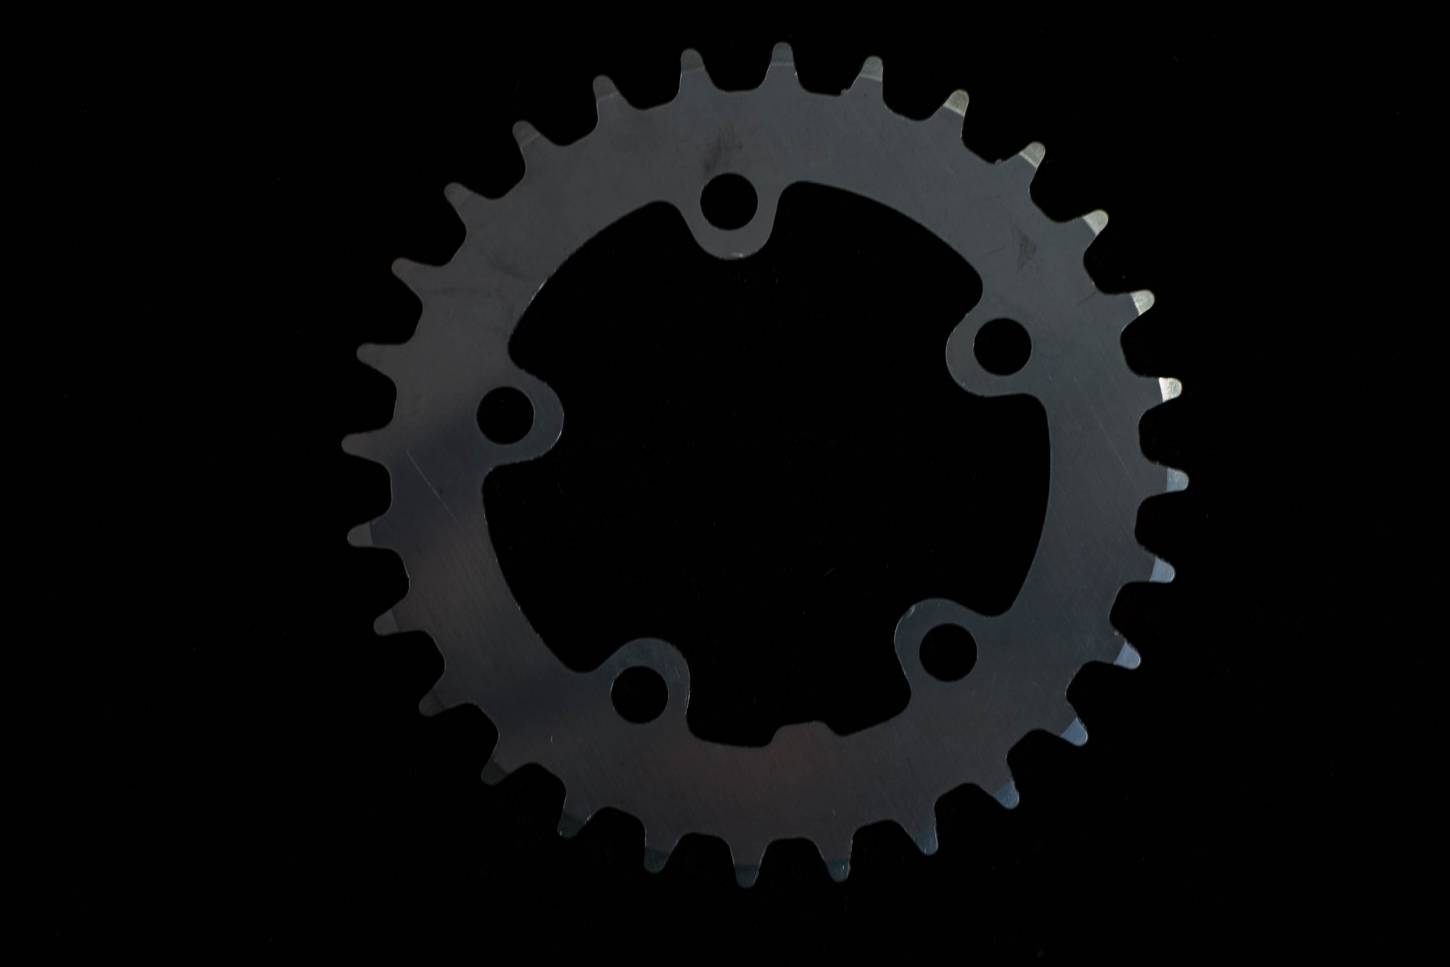 Chainring LK 74 Chainring 28 T made of steel - indestructible!